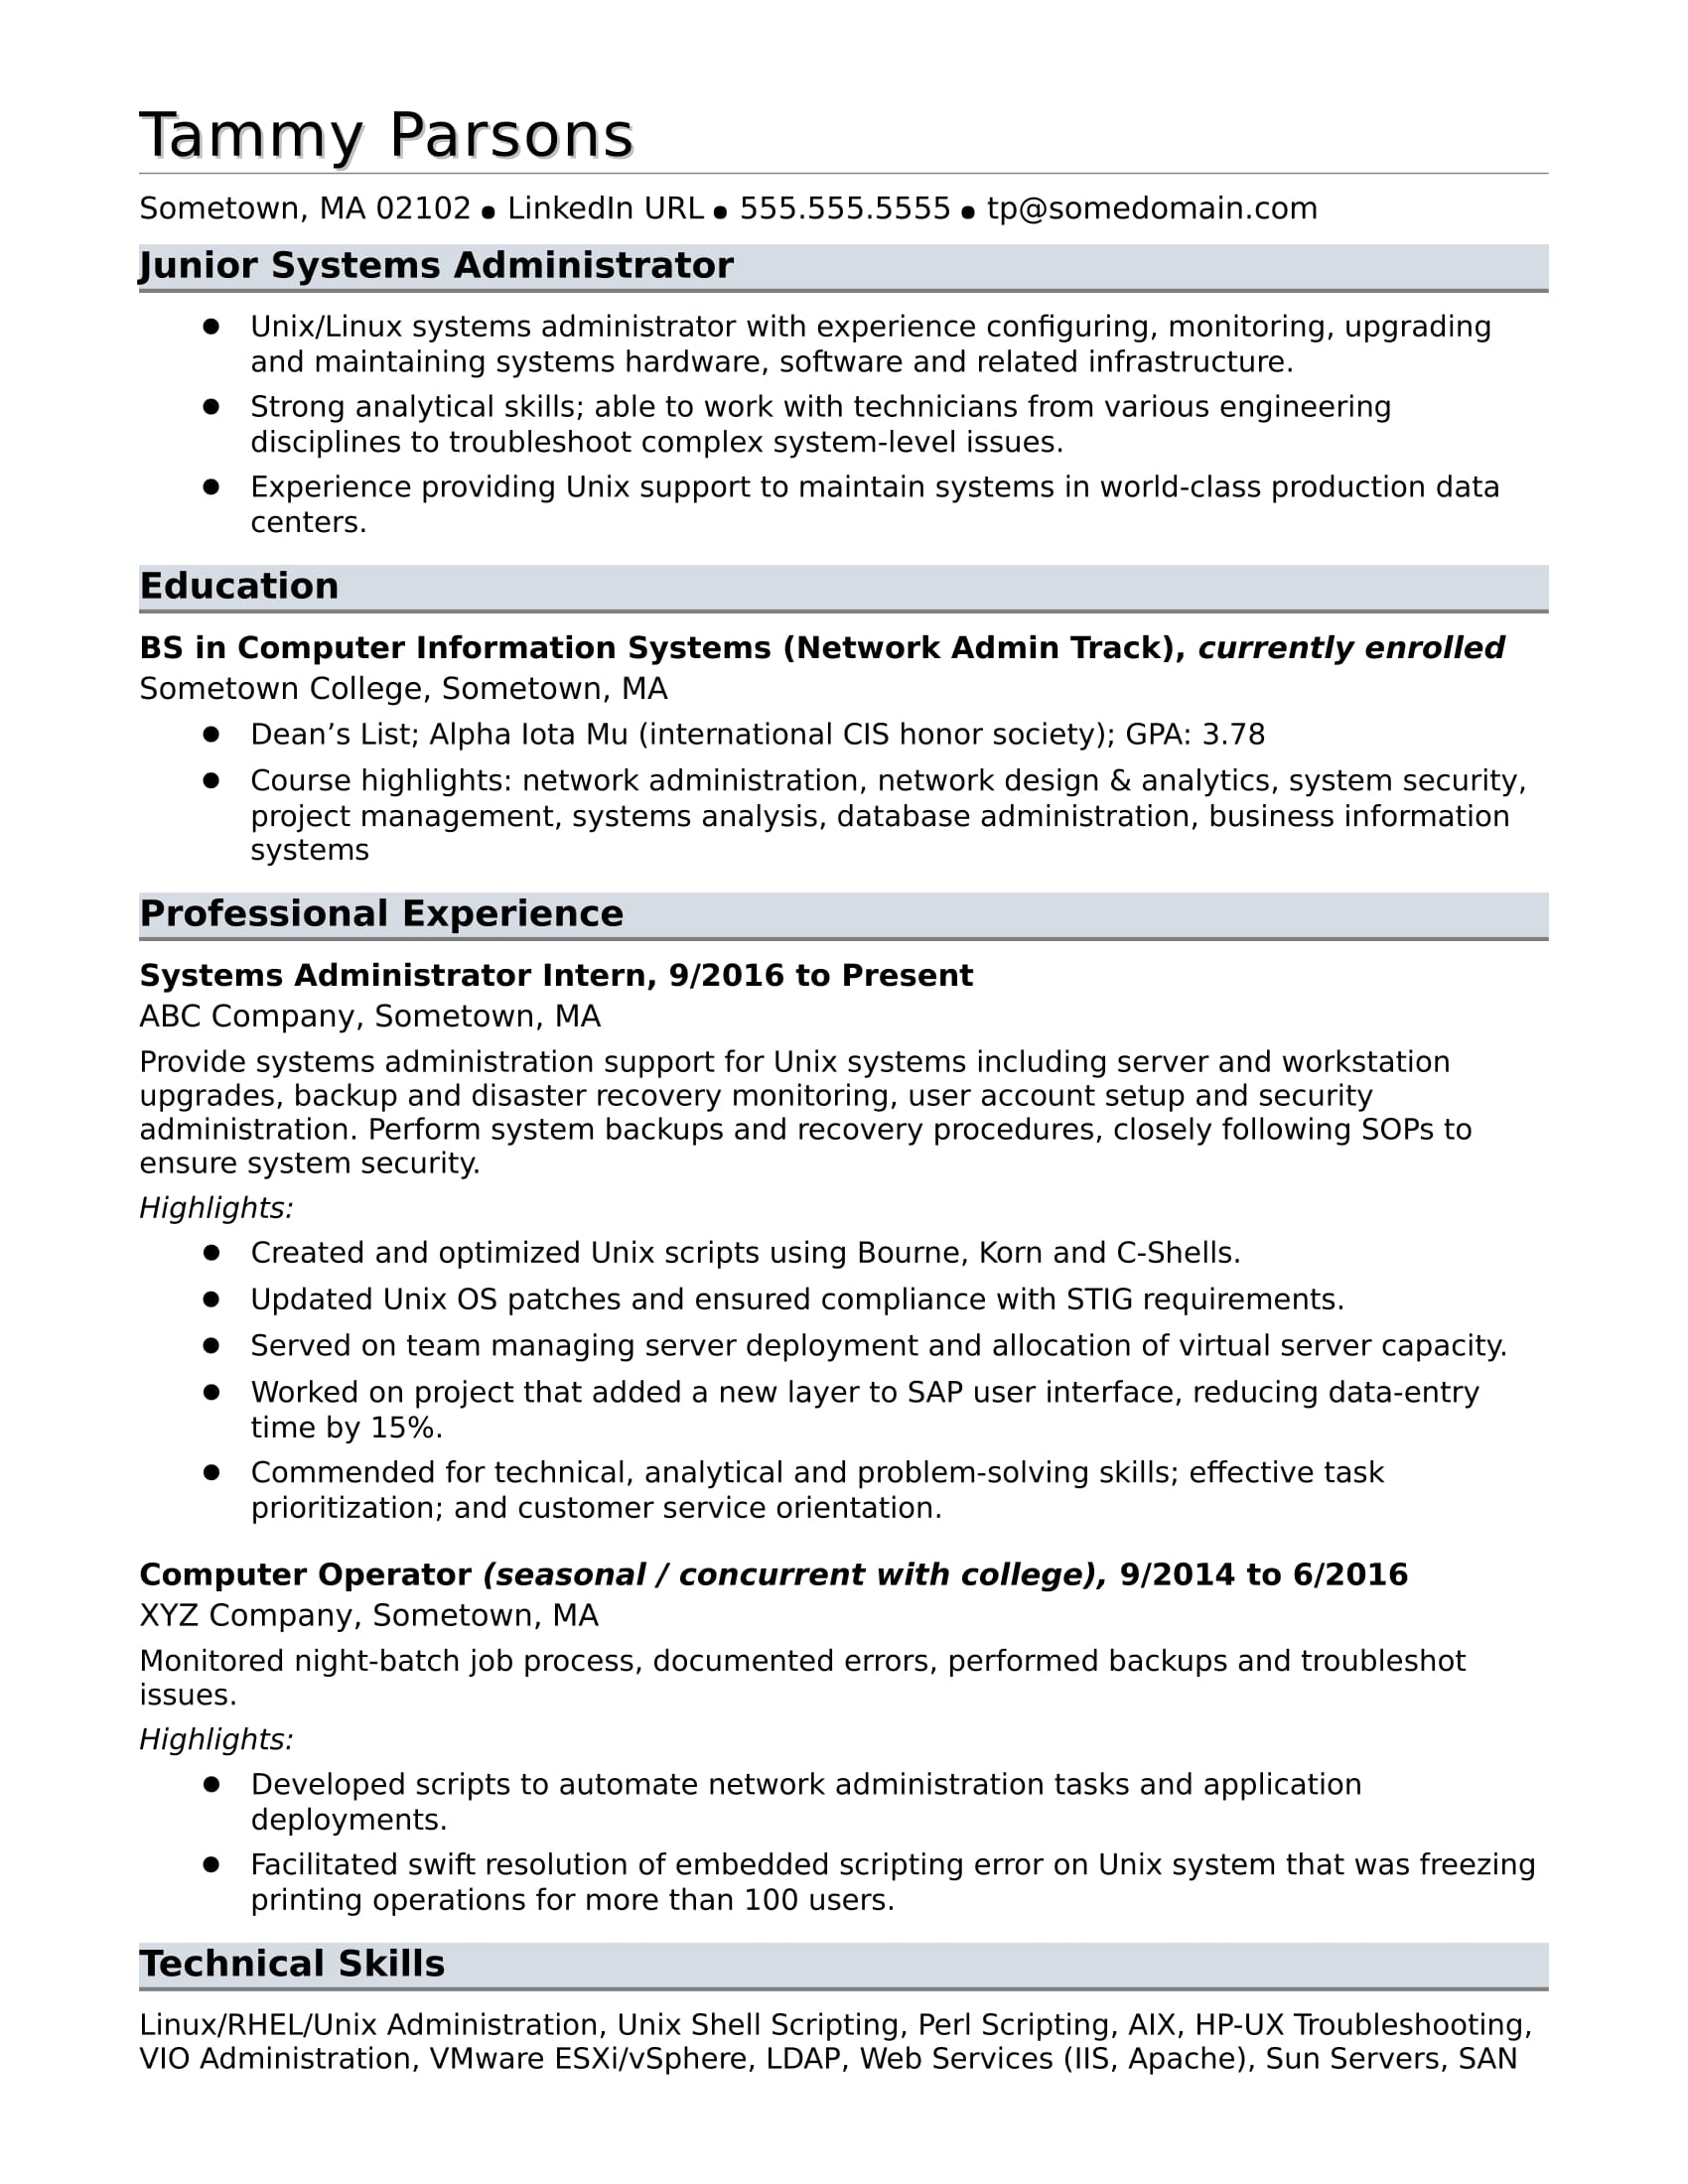 Sample Resume for an Entry-Level Systems Administrator | Monster.com